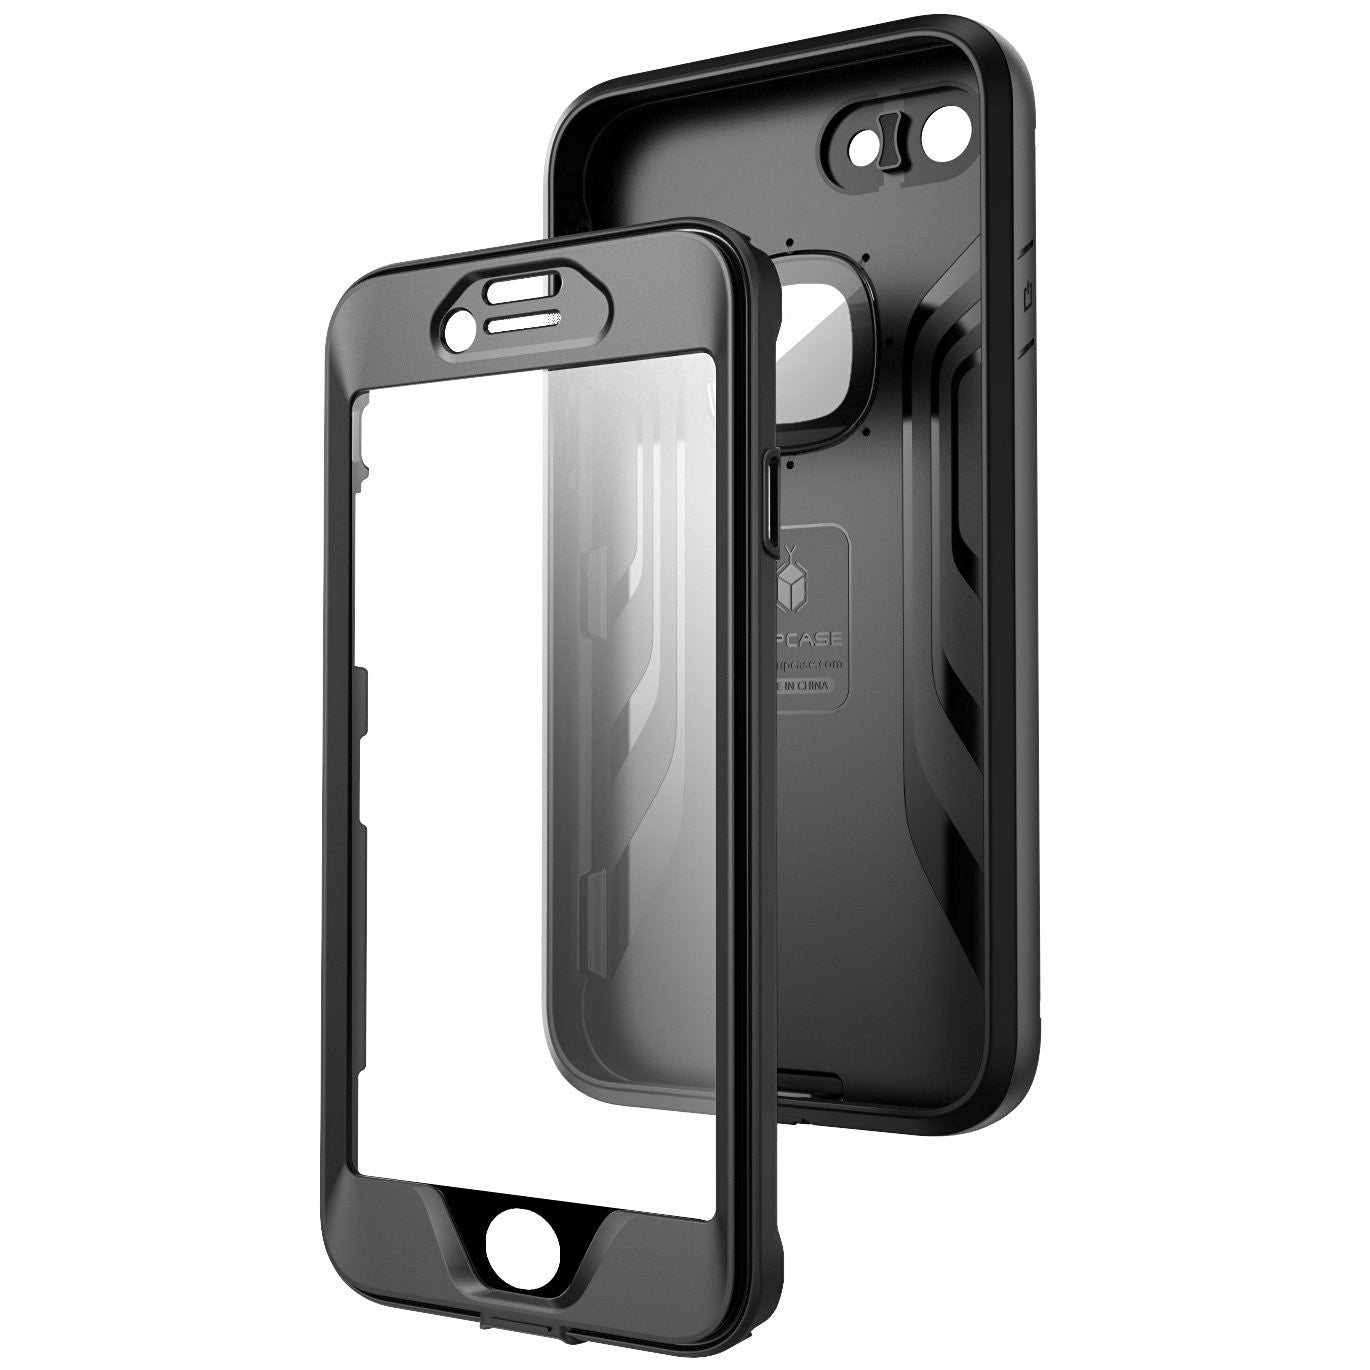 SUPCASE Water Resistant Full-body Rugged Case with Built-in Screen Protector For iPhone 7/7 Plus